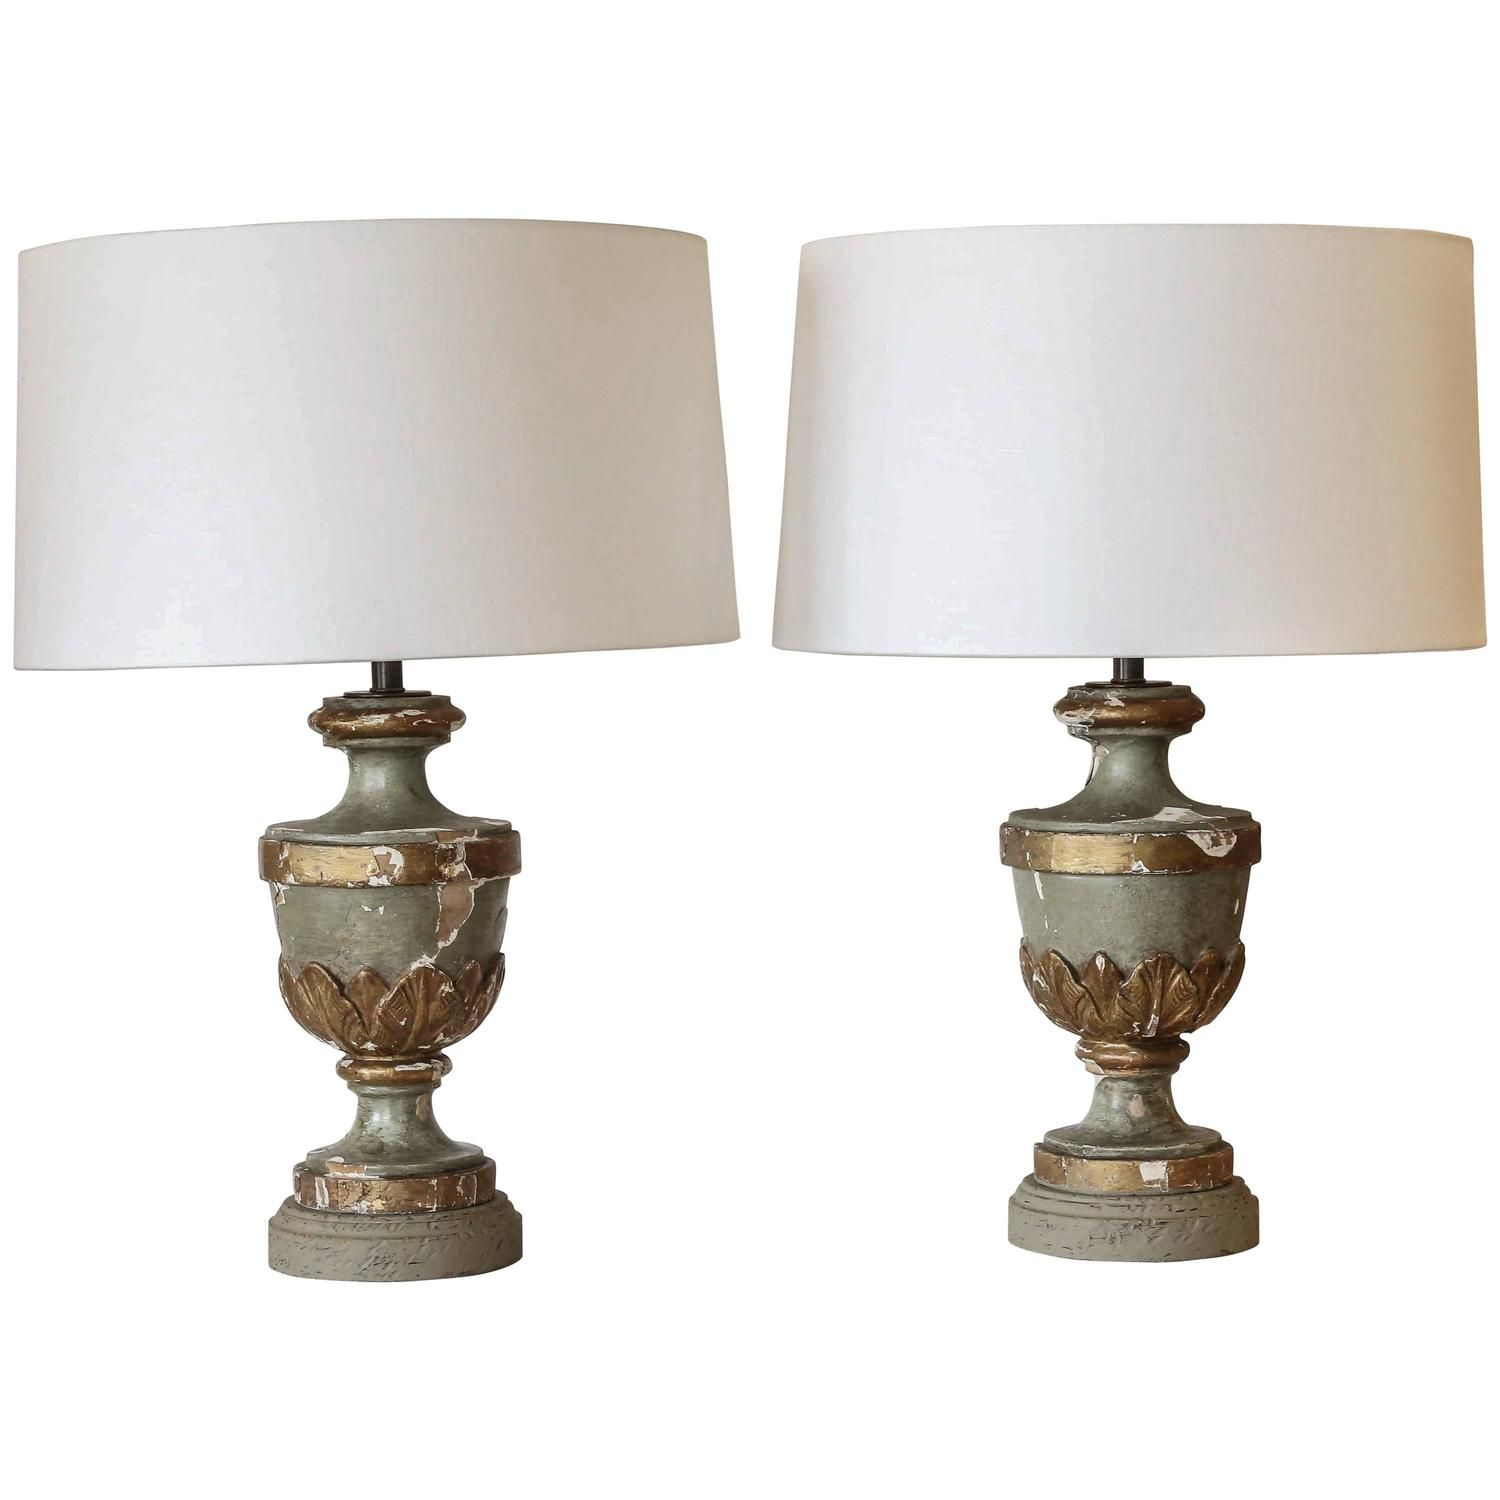 19th century painted and carved finials as custom table lamps 19th century painted and carved finials as custom table lamps geotapseo Gallery